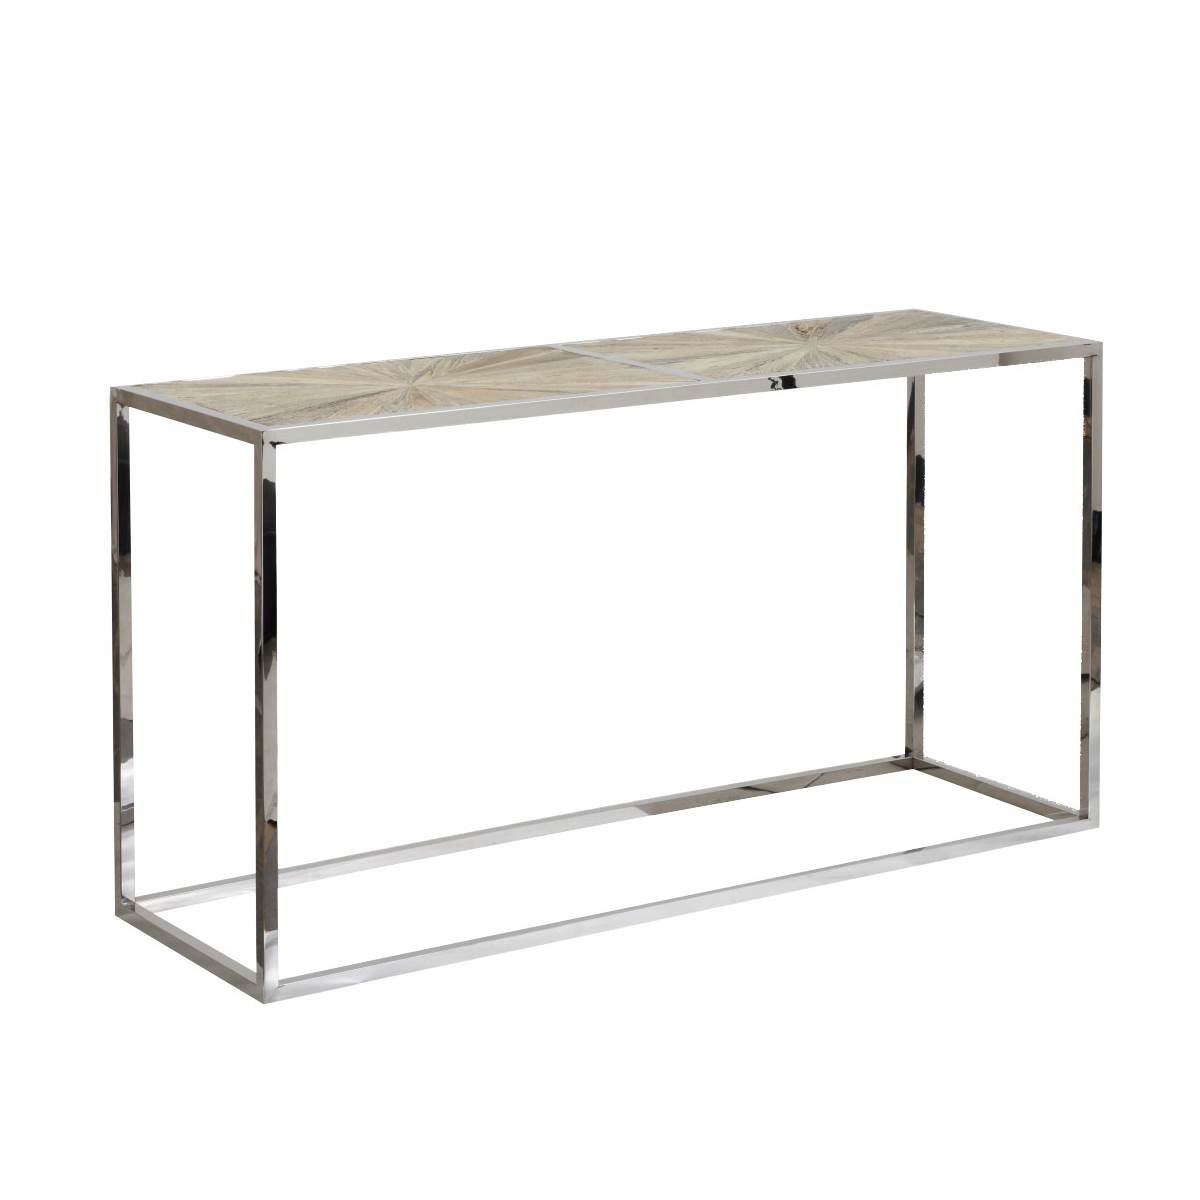 Parquet Console Table | Marshall | Pinterest For Parsons Black Marble Top & Brass Base 48X16 Console Tables (Photo 17 of 30)